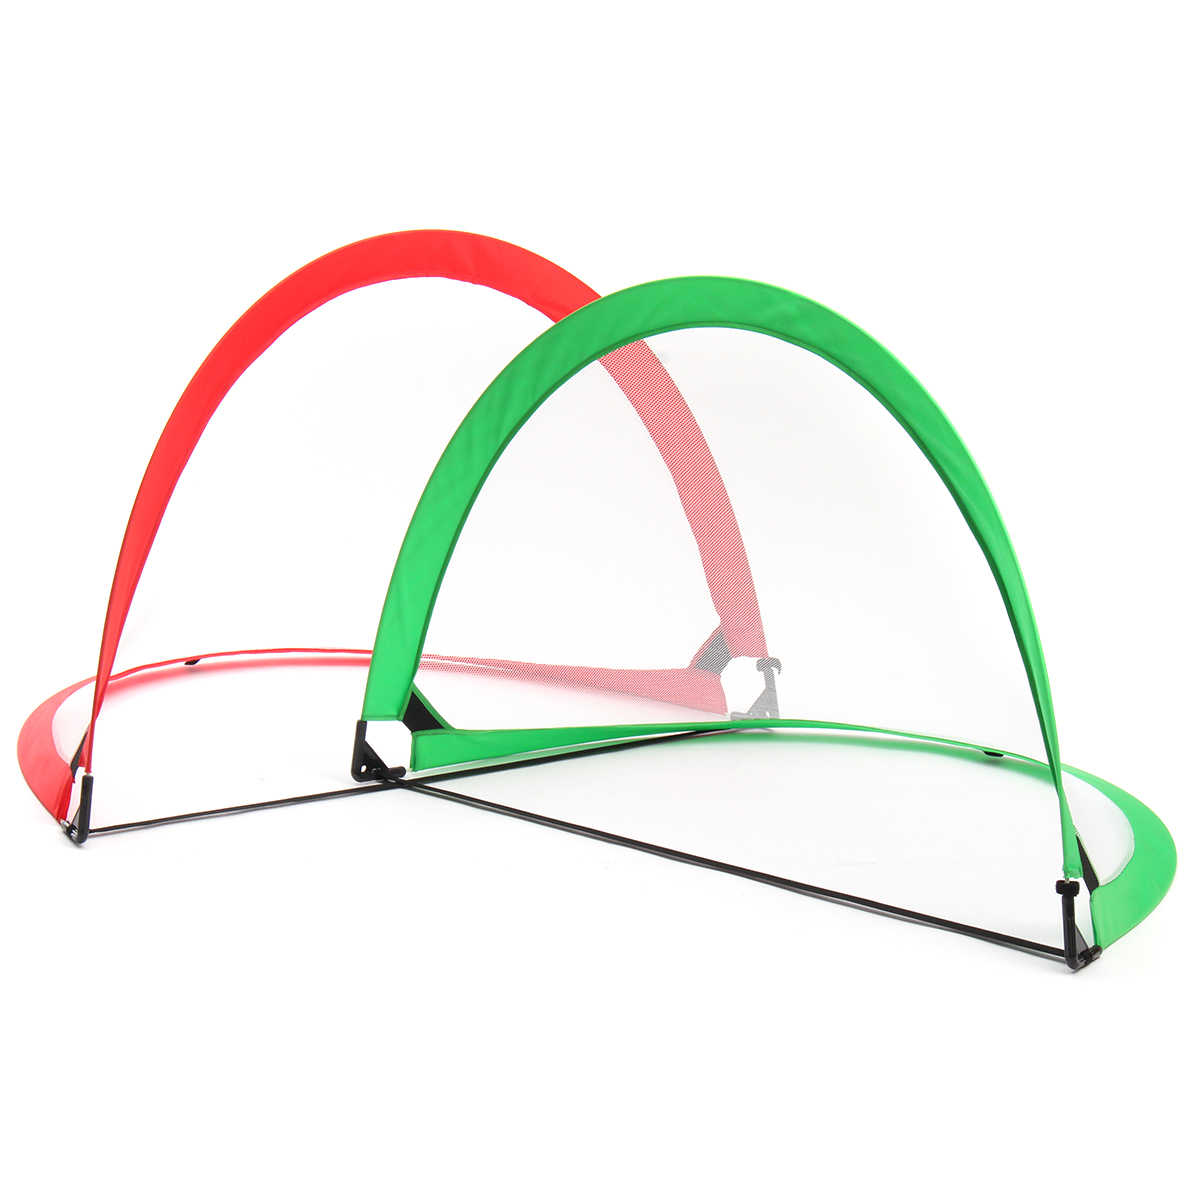 2Pcs Mini Football Soccer Goals for Training Junior Kids Children